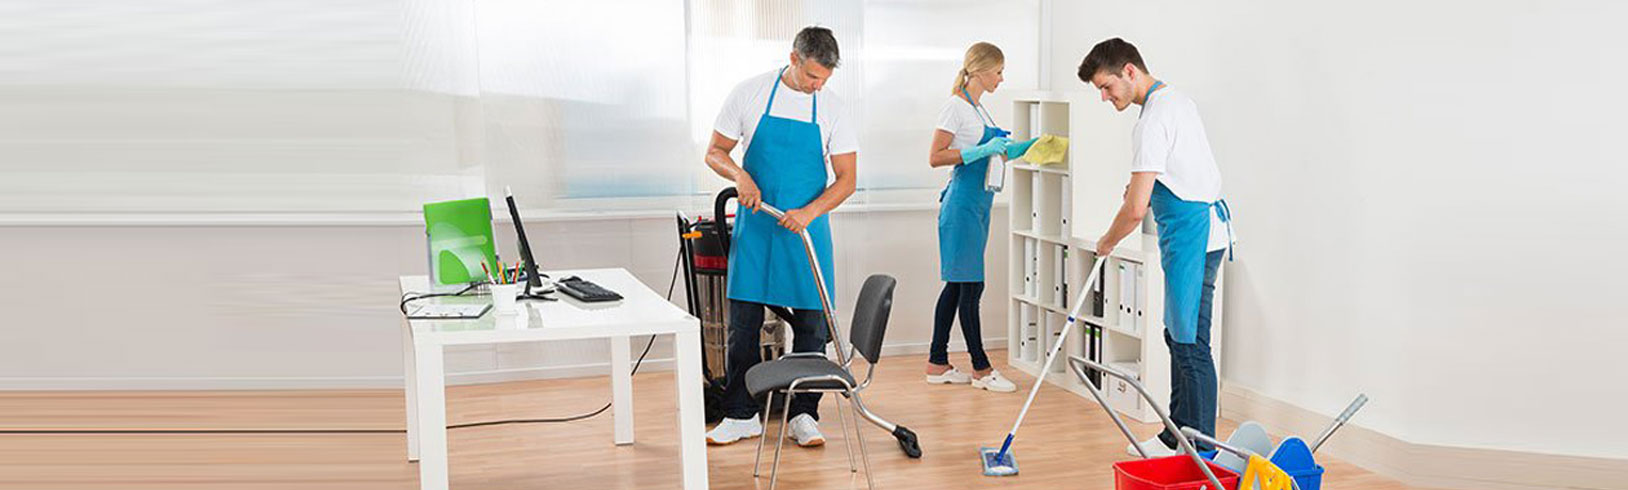 Commercial Cleaning Service Providers